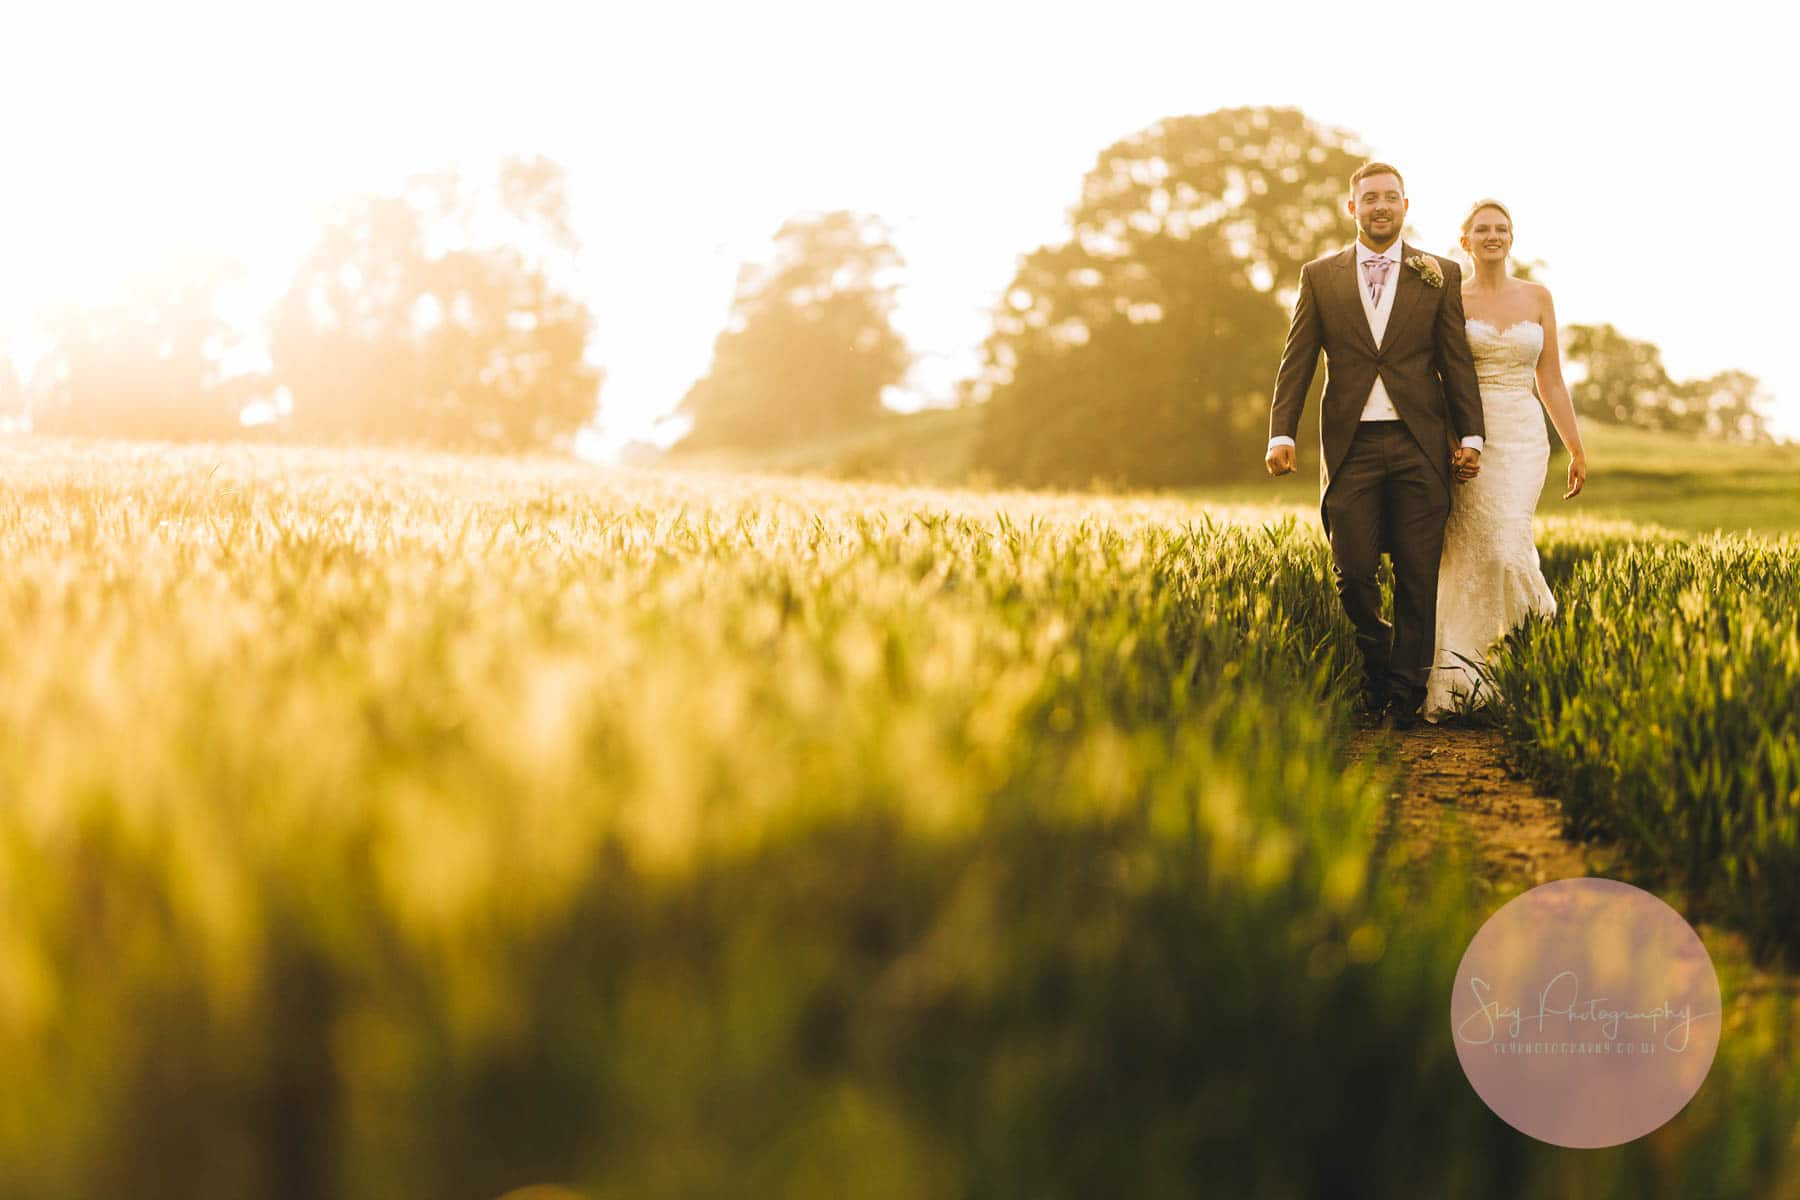 Bride and groom walking through a corn field